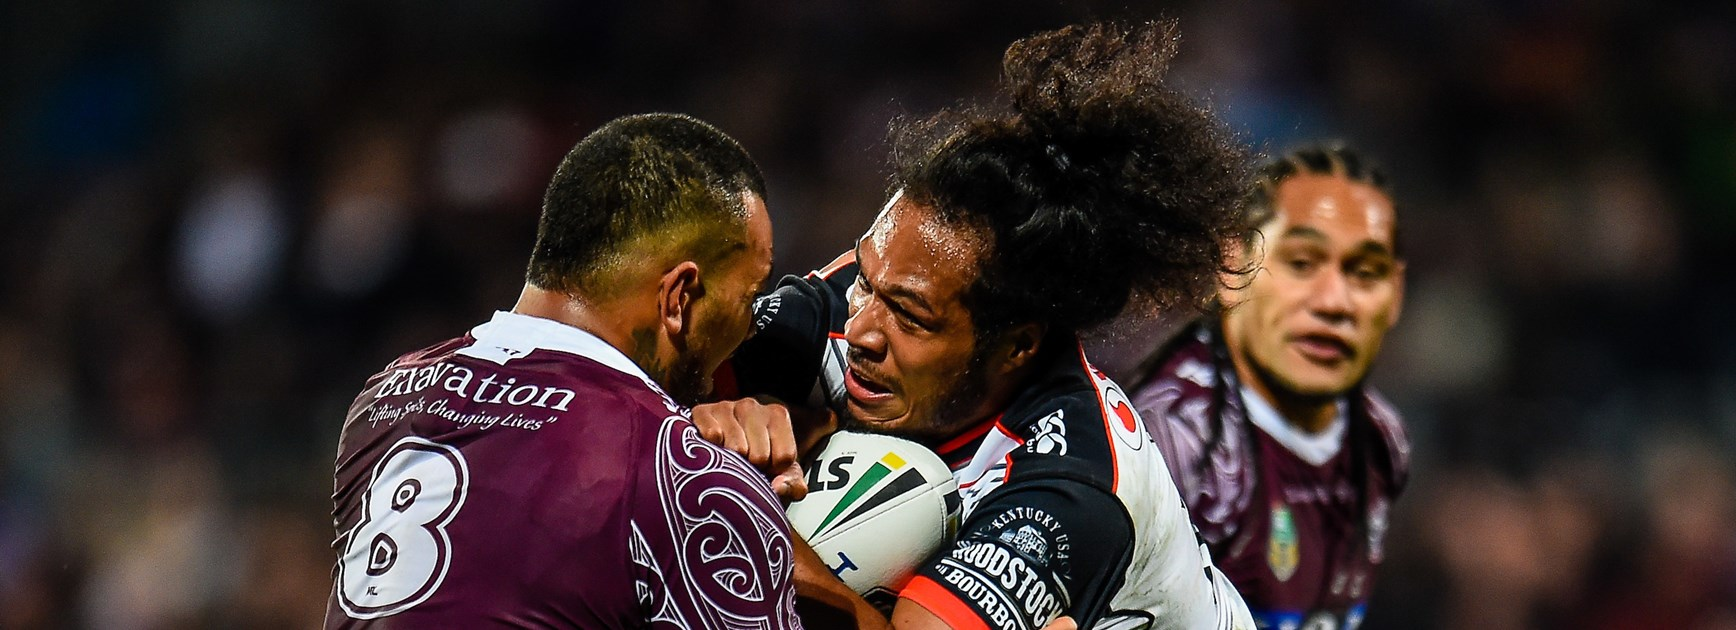 Warriors rout Sea Eagles in Johnson's 150th